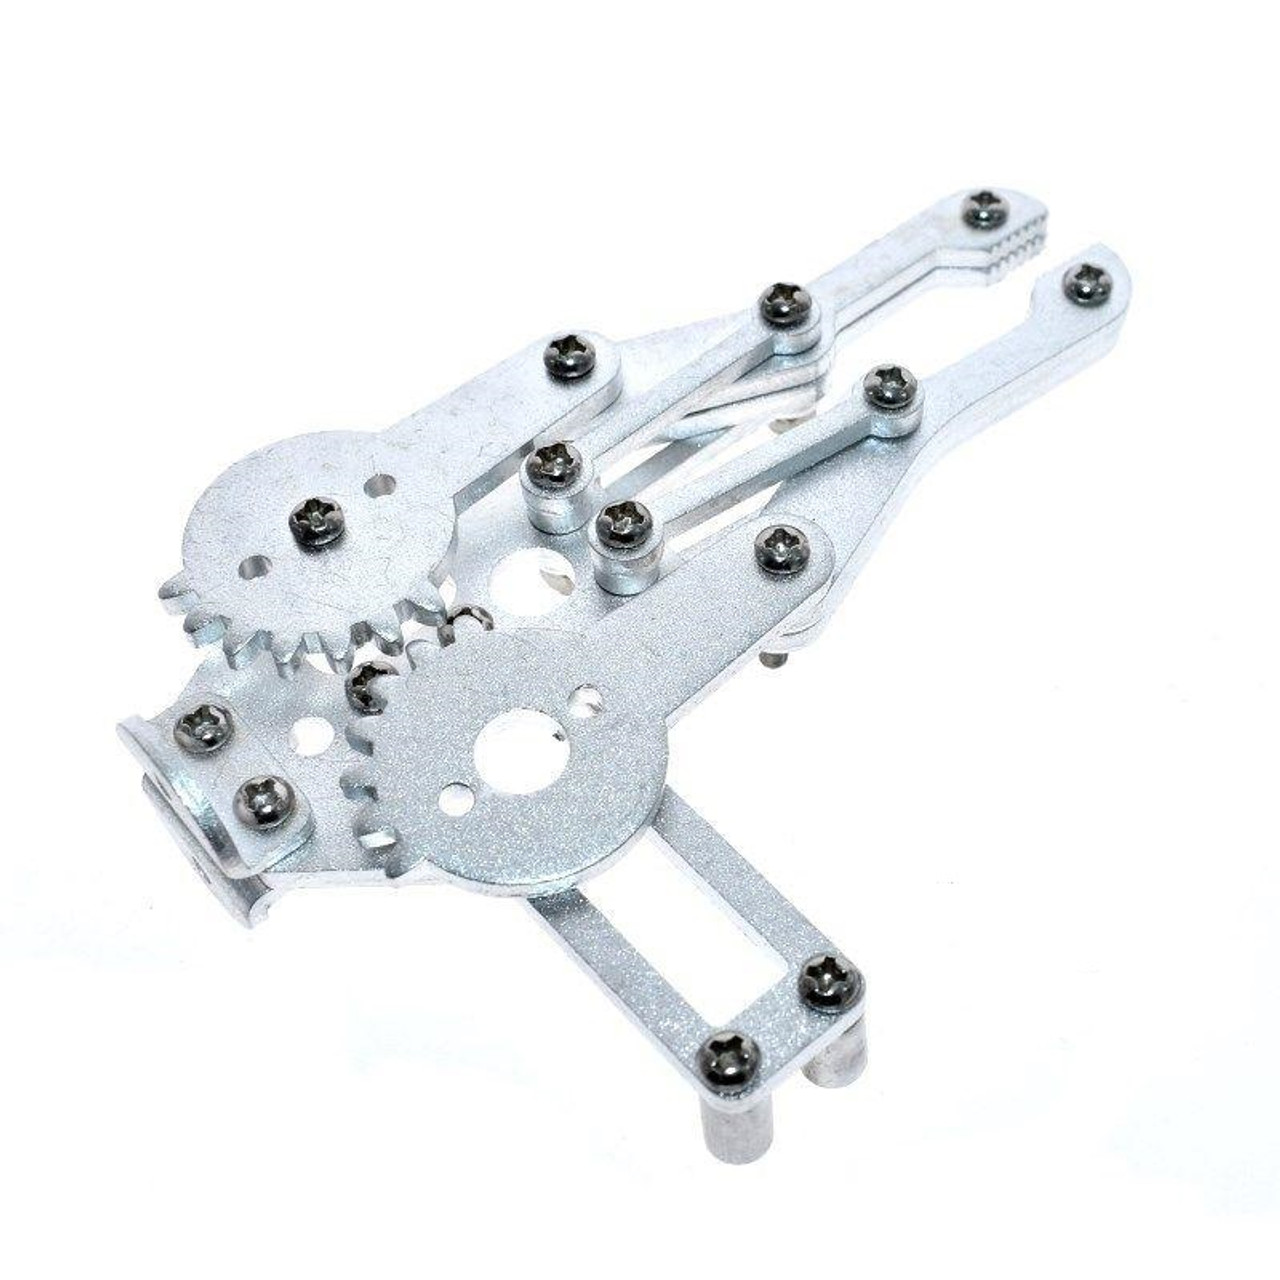 Robot Clamp Gripper Bracket Servo Mount Mechanical Claw Arm Kit For Mg995 Mg996 Sg5010 Servo Cheapest Price From Our Site Parts & Accessories